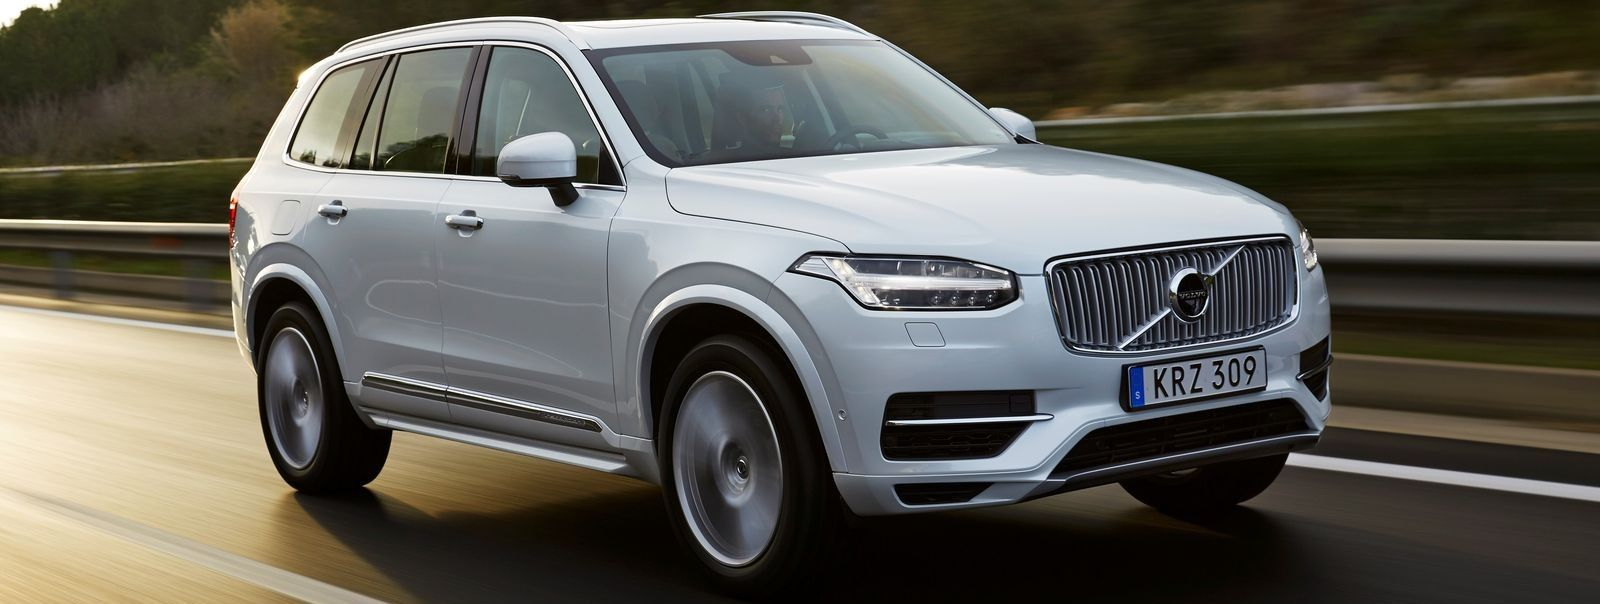 Best 7 seater SUVs to buy in 2016 | carwow